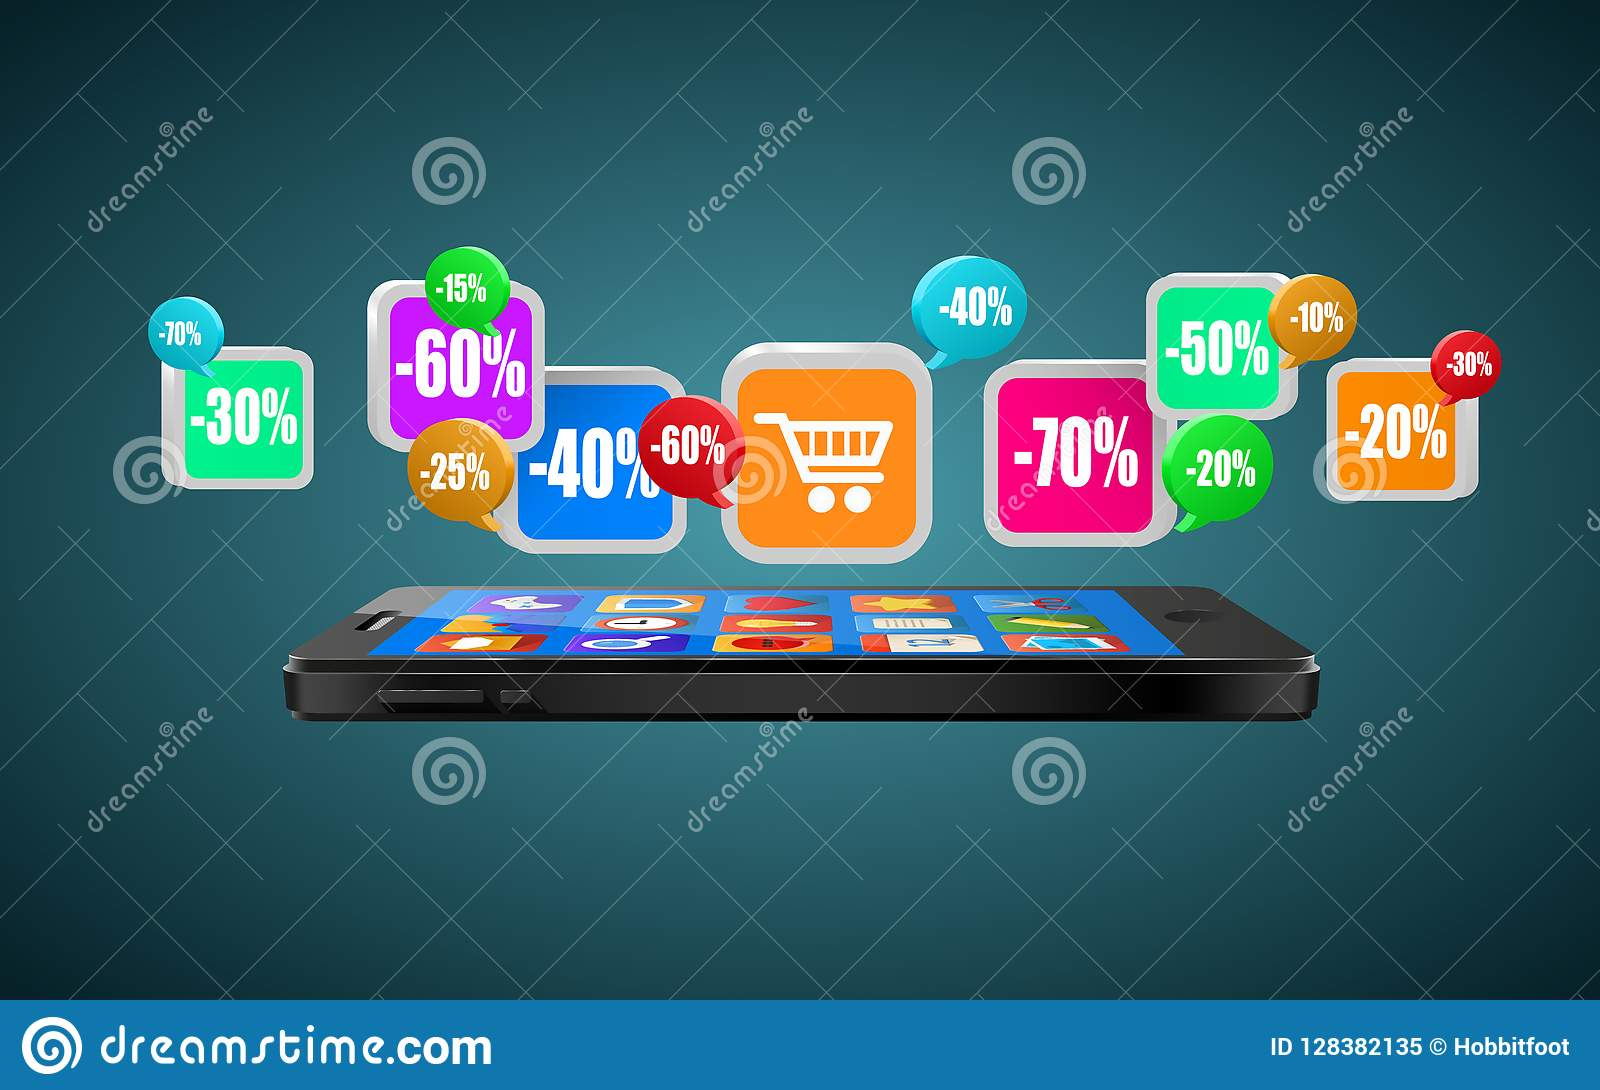 Phone with app icons. Mobile buying. Internet shopping or commerce concept.